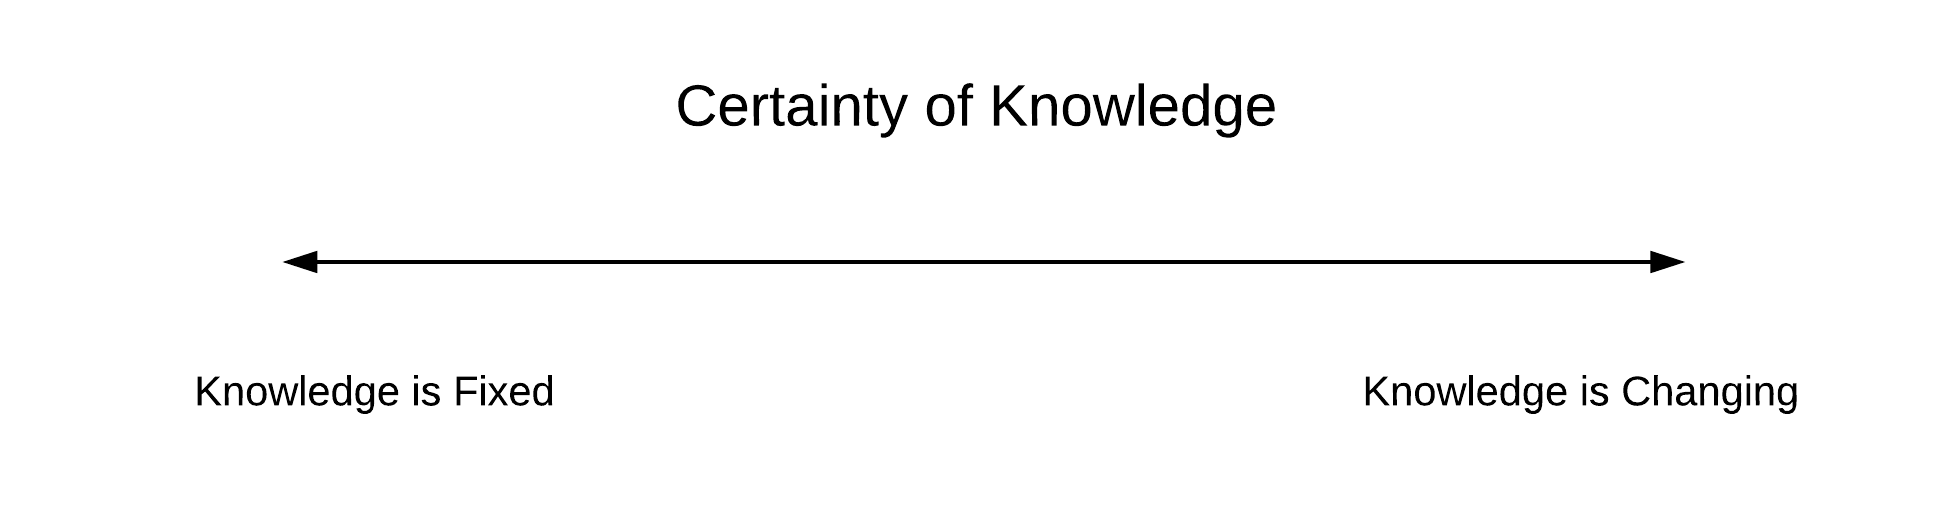 certainty of information